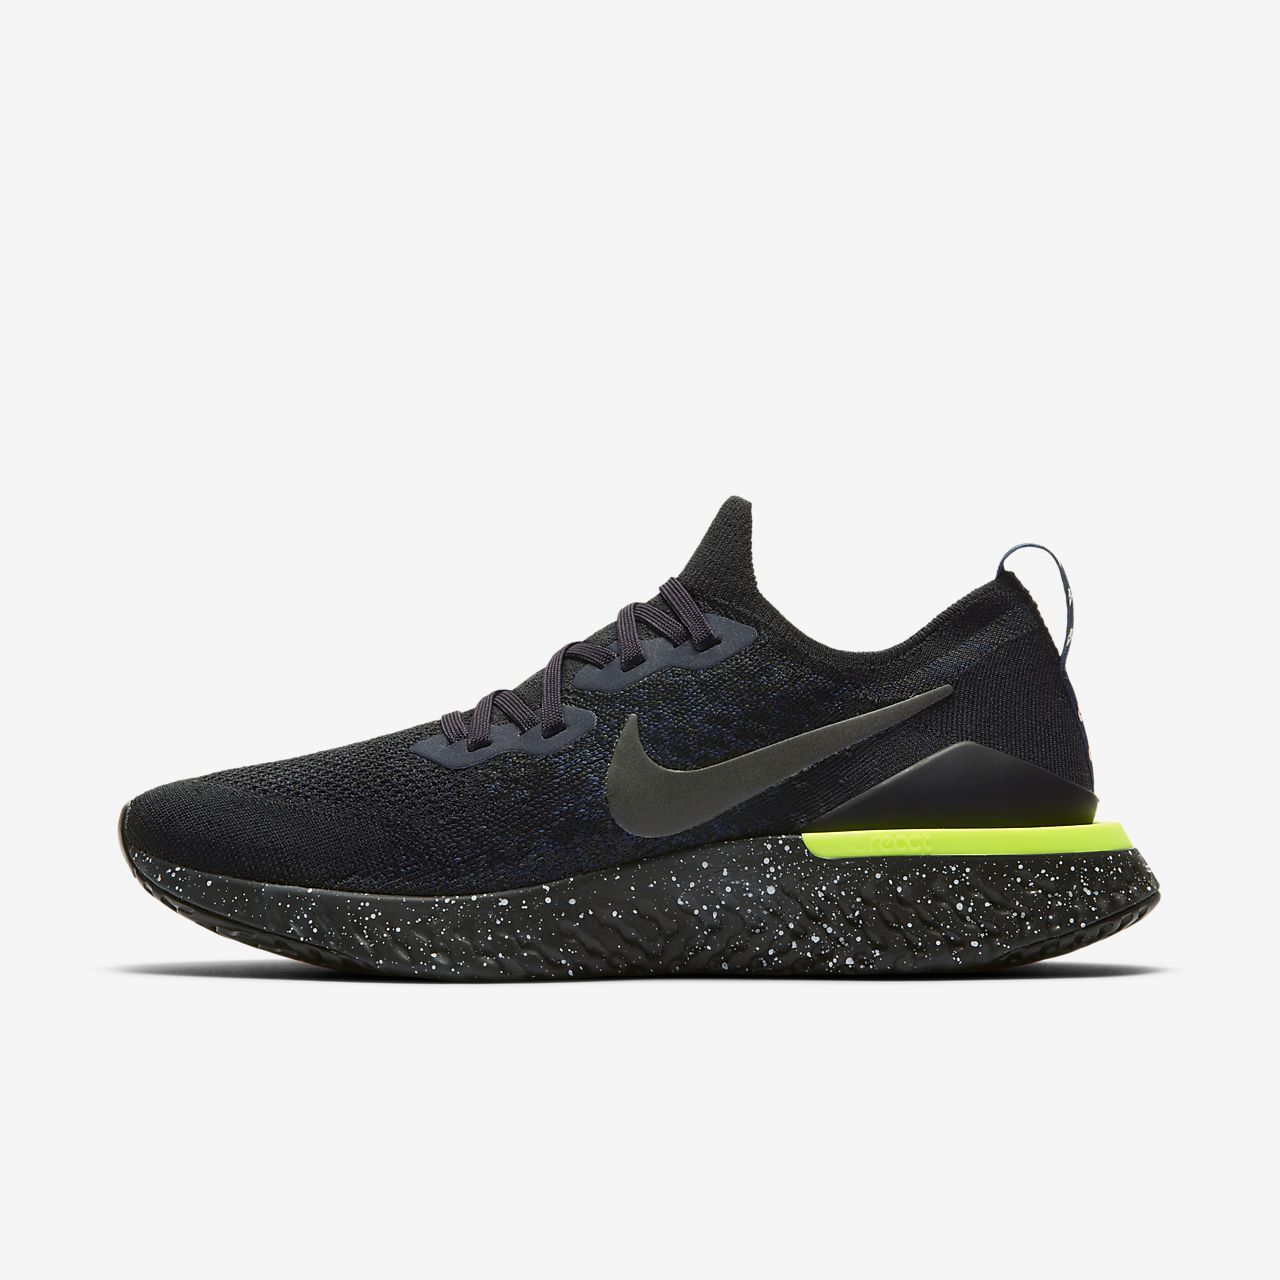 2 Nike FC Barcelona x Epic React Flyknit 2 Shoes Released